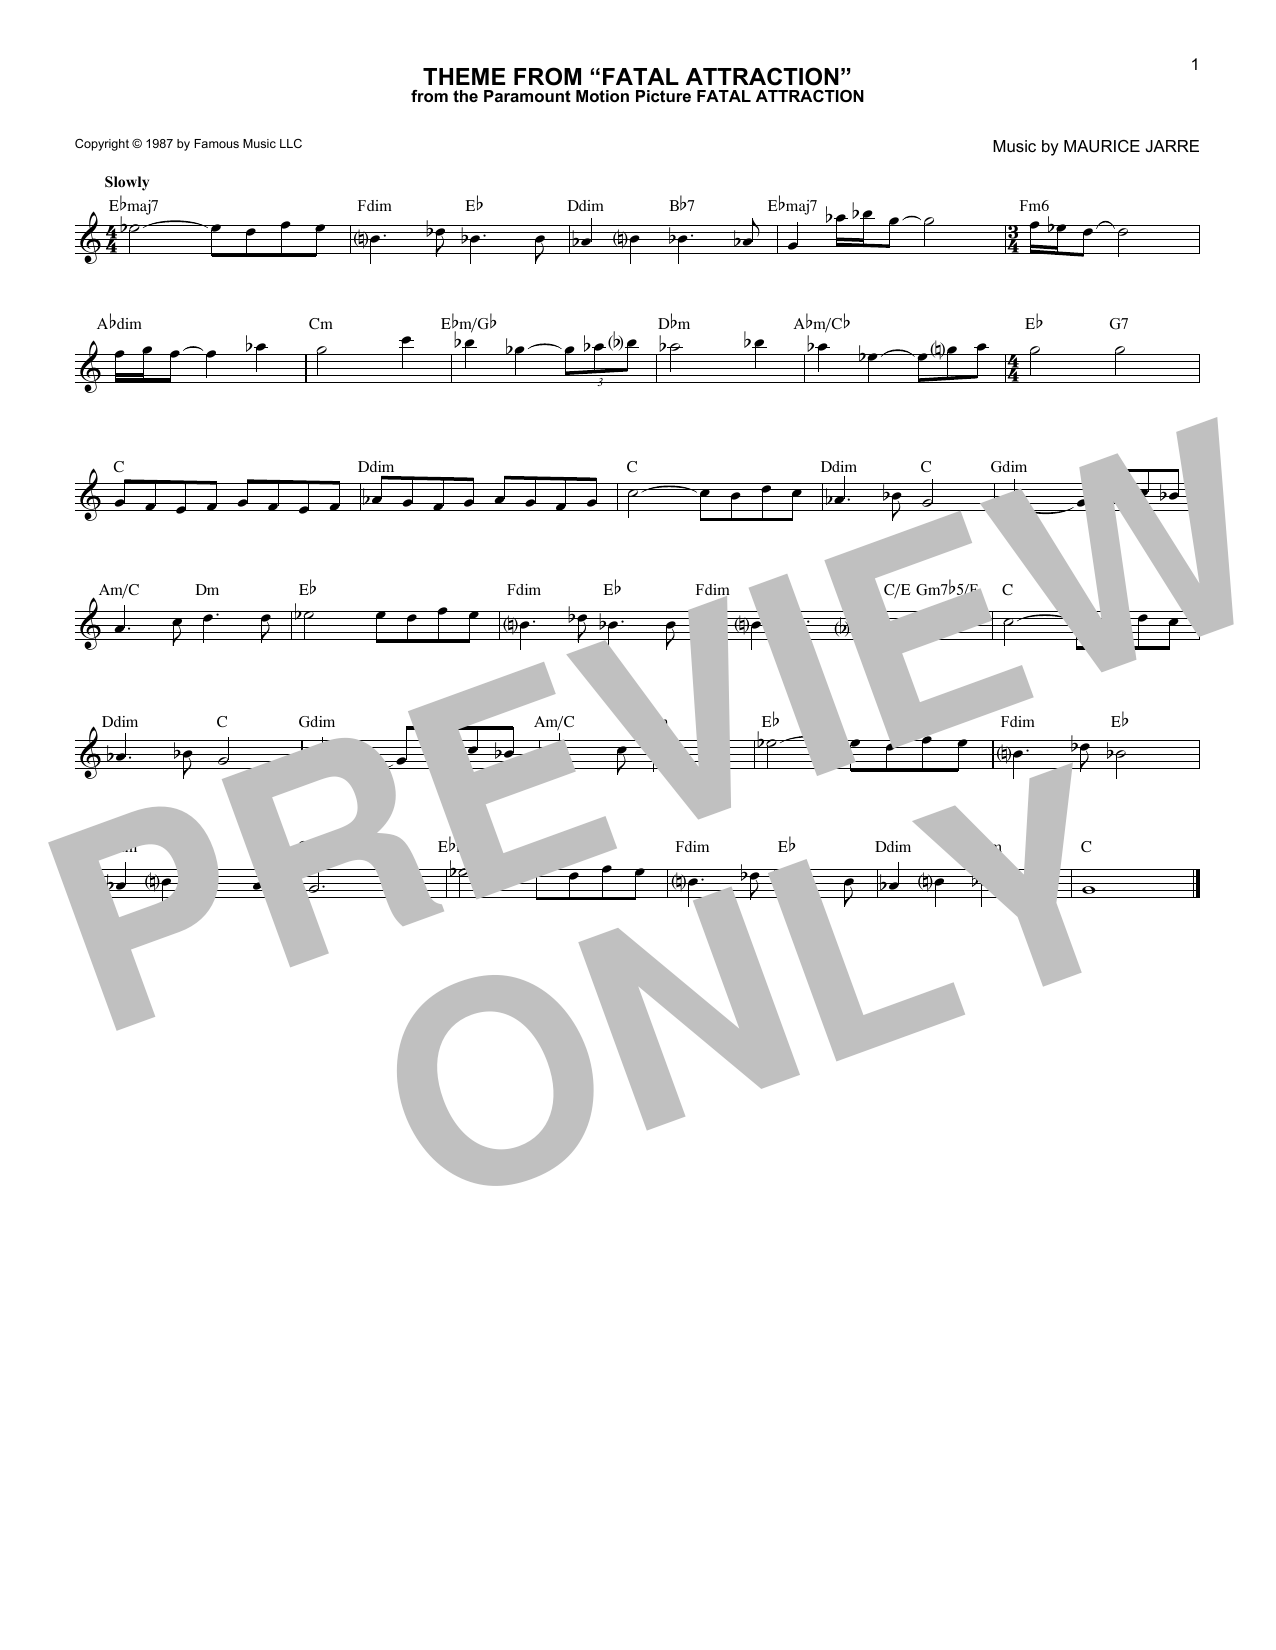 Maurice Jarre Theme From Fatal Attraction sheet music notes and chords. Download Printable PDF.